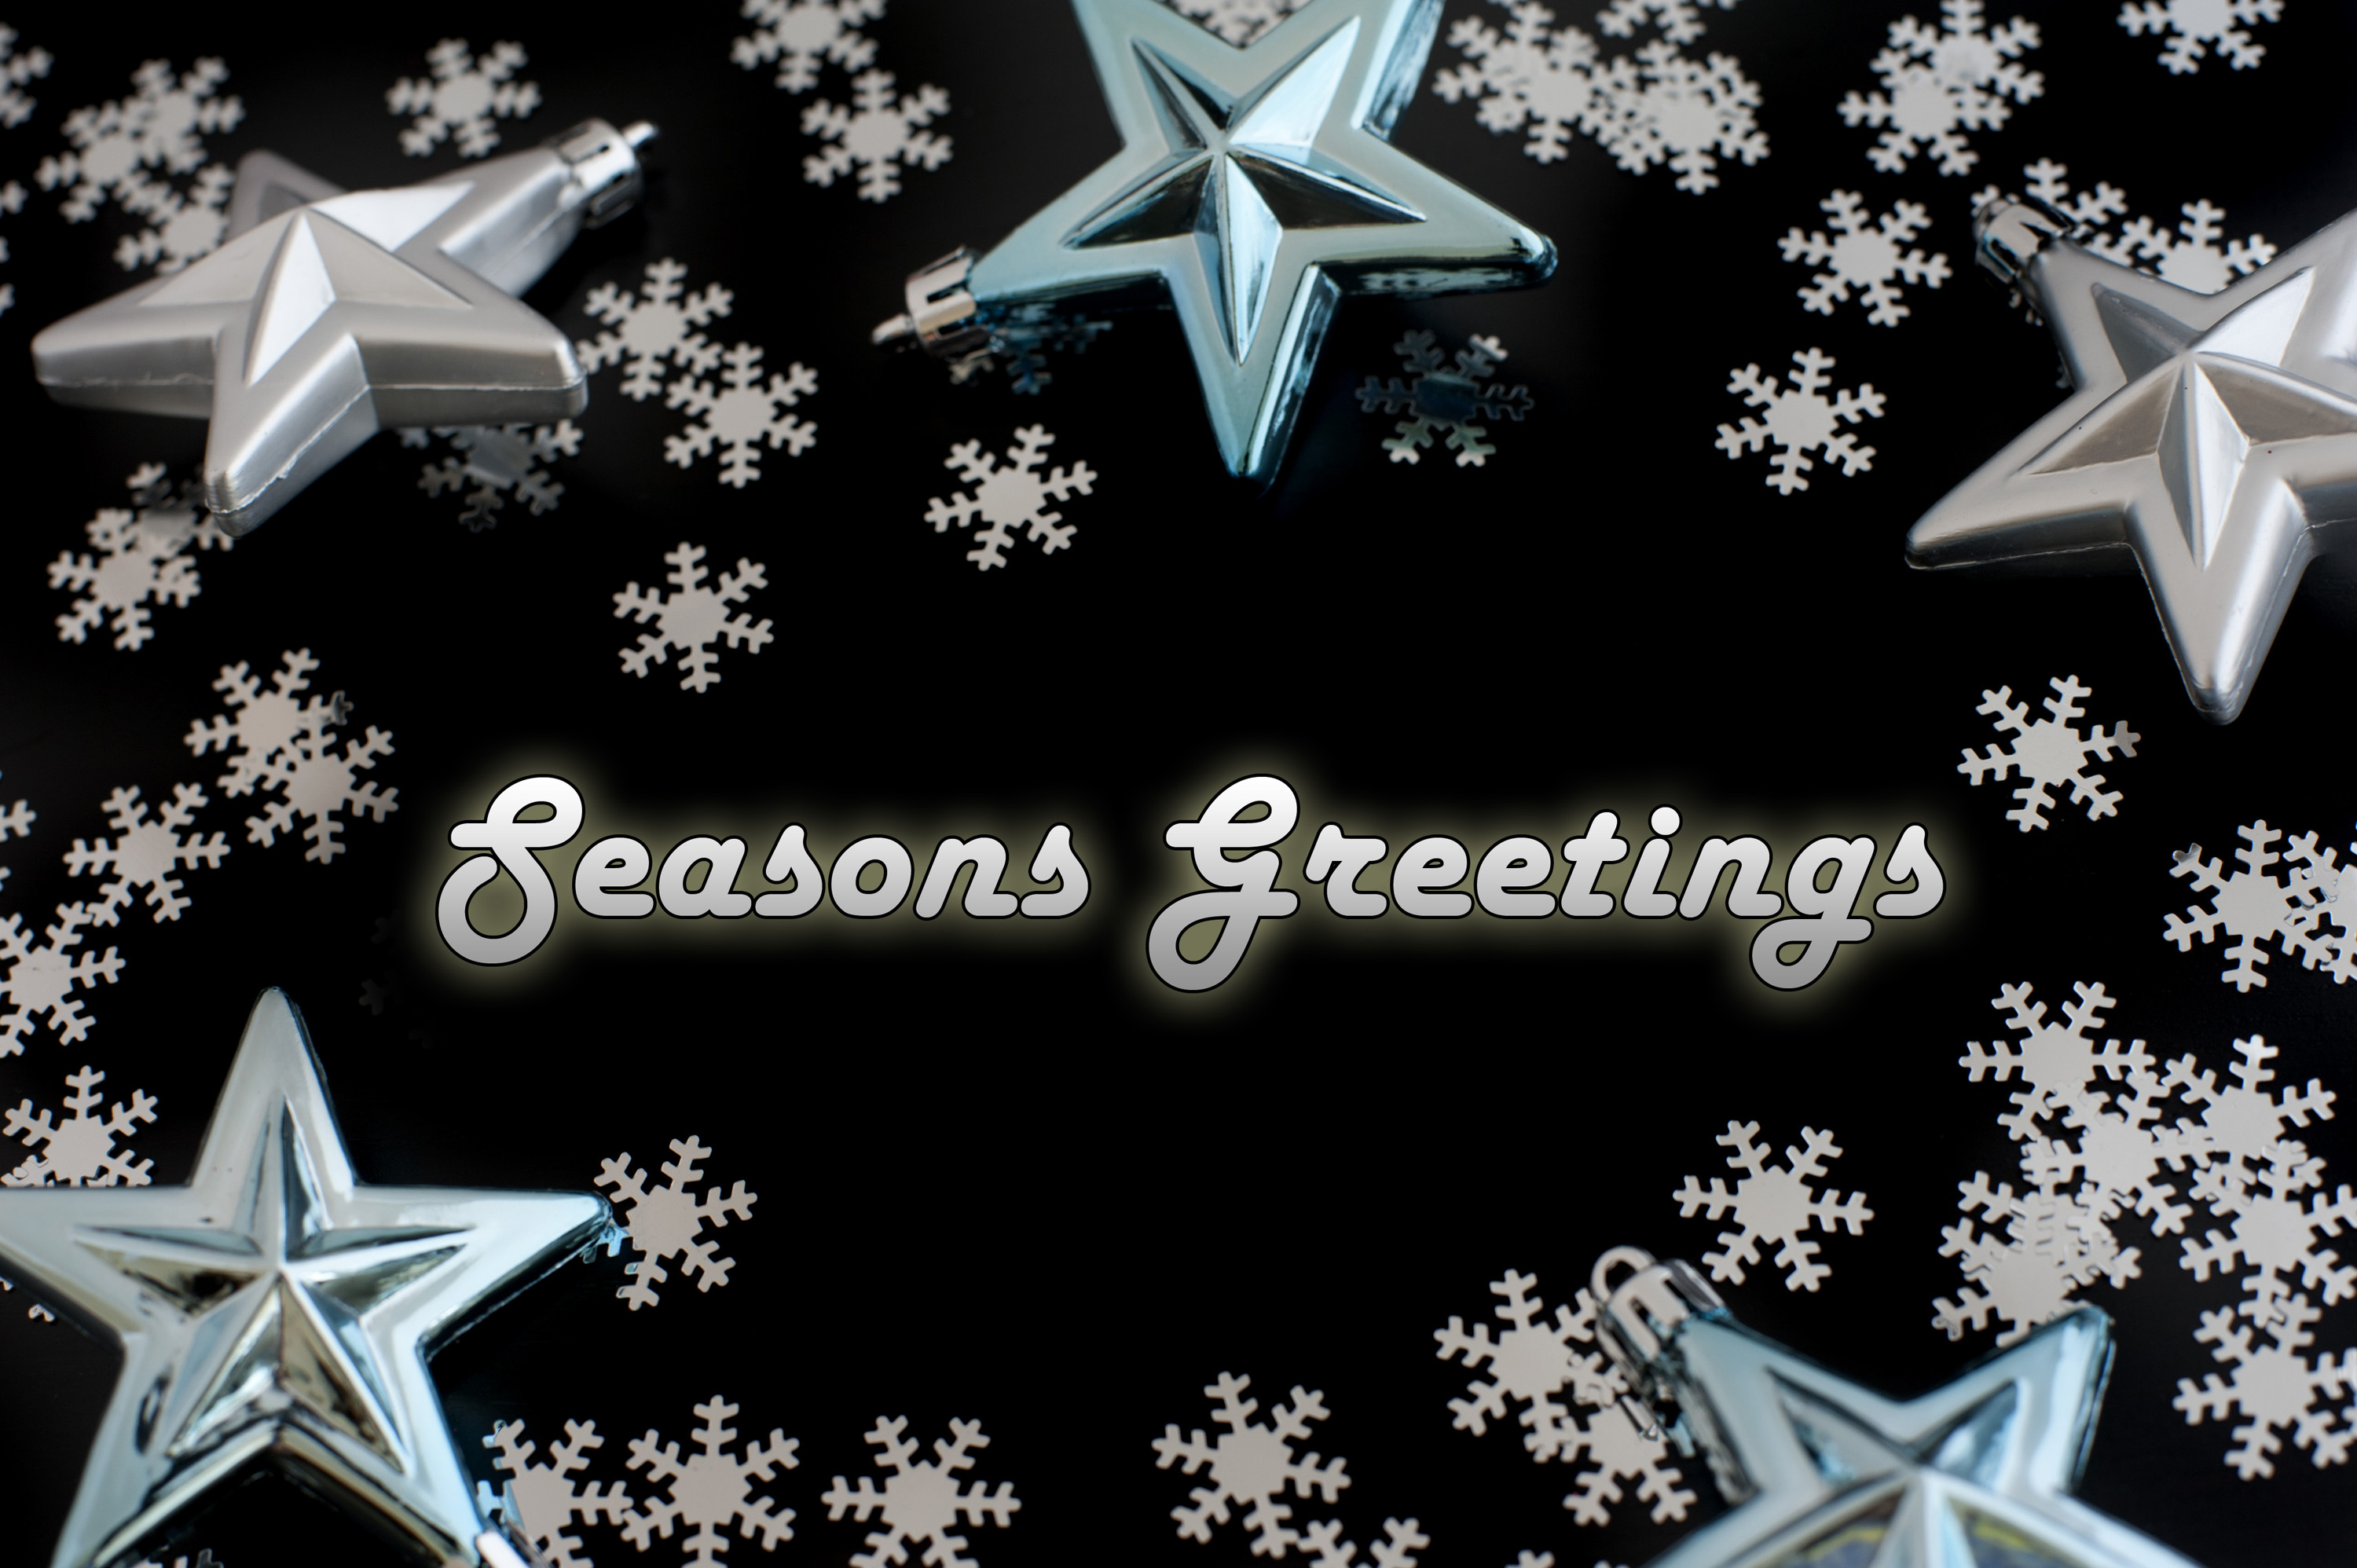 Photo of seasons greetings card free christmas images seasons greetings card with glowing text surrounded by snowflakes and stars on a black background kristyandbryce Image collections